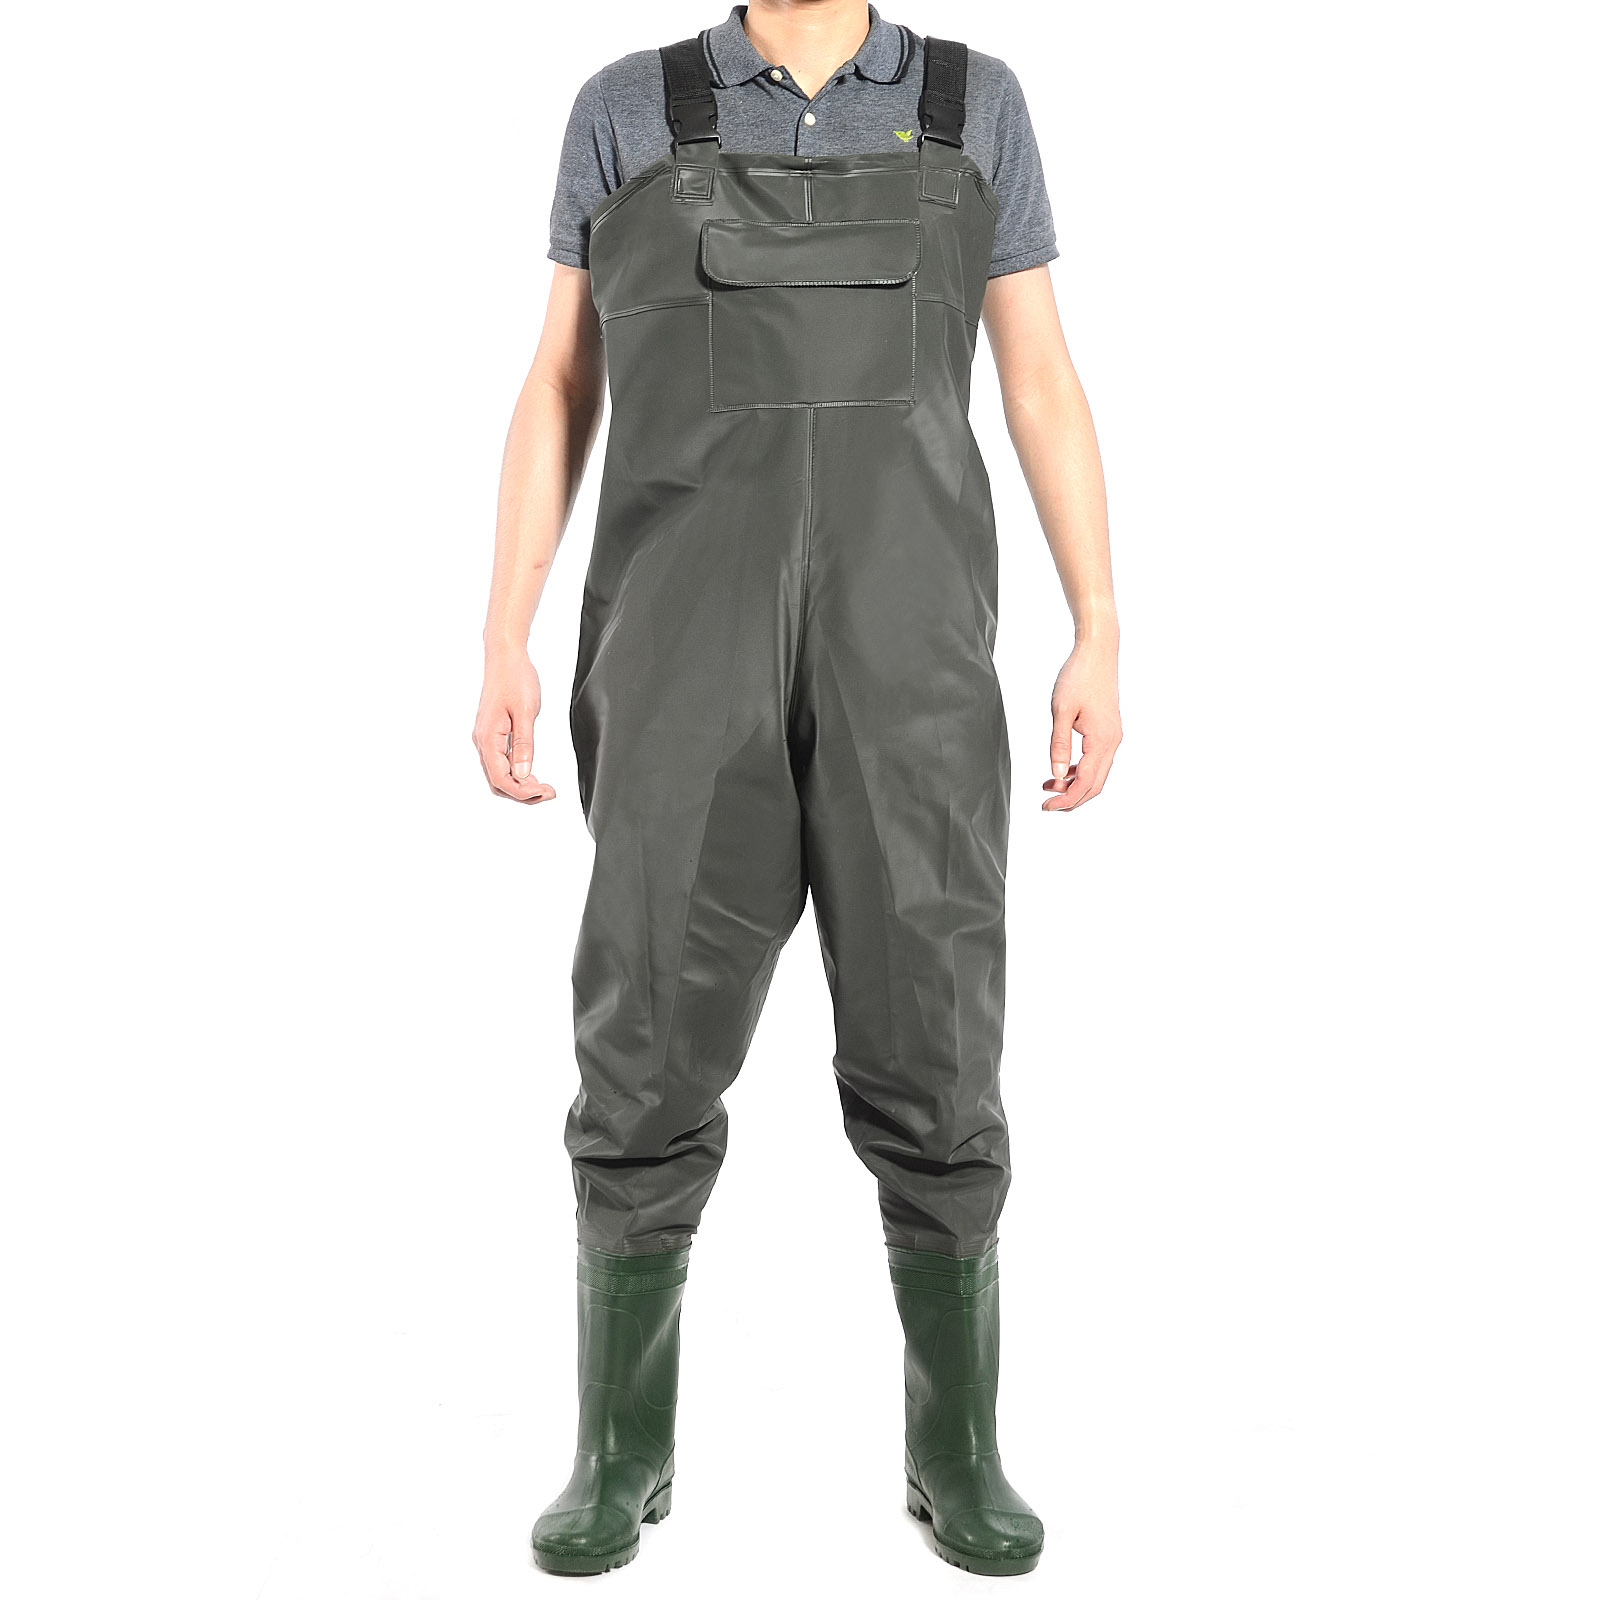 Green pvc chest waders 100 waterproof fly coarse fishing for Fly fishing waders